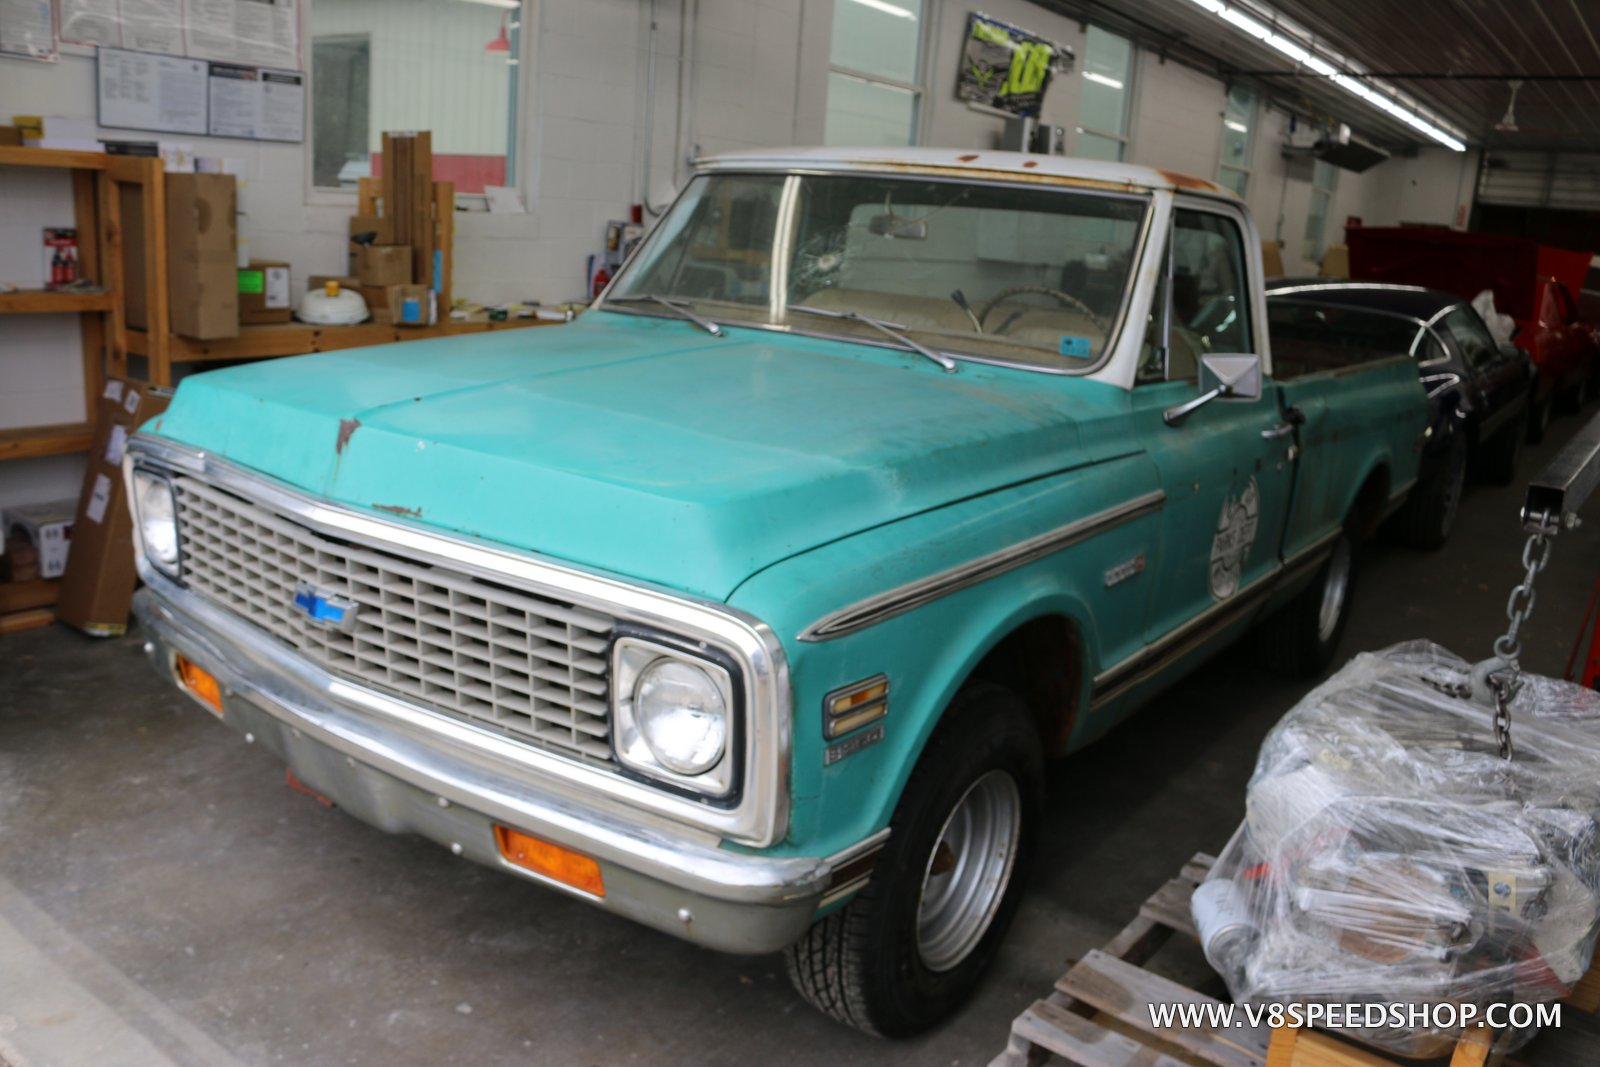 1971 Chevrolet C-10 Pickup Restoration At V8 Speed & Resto Shop